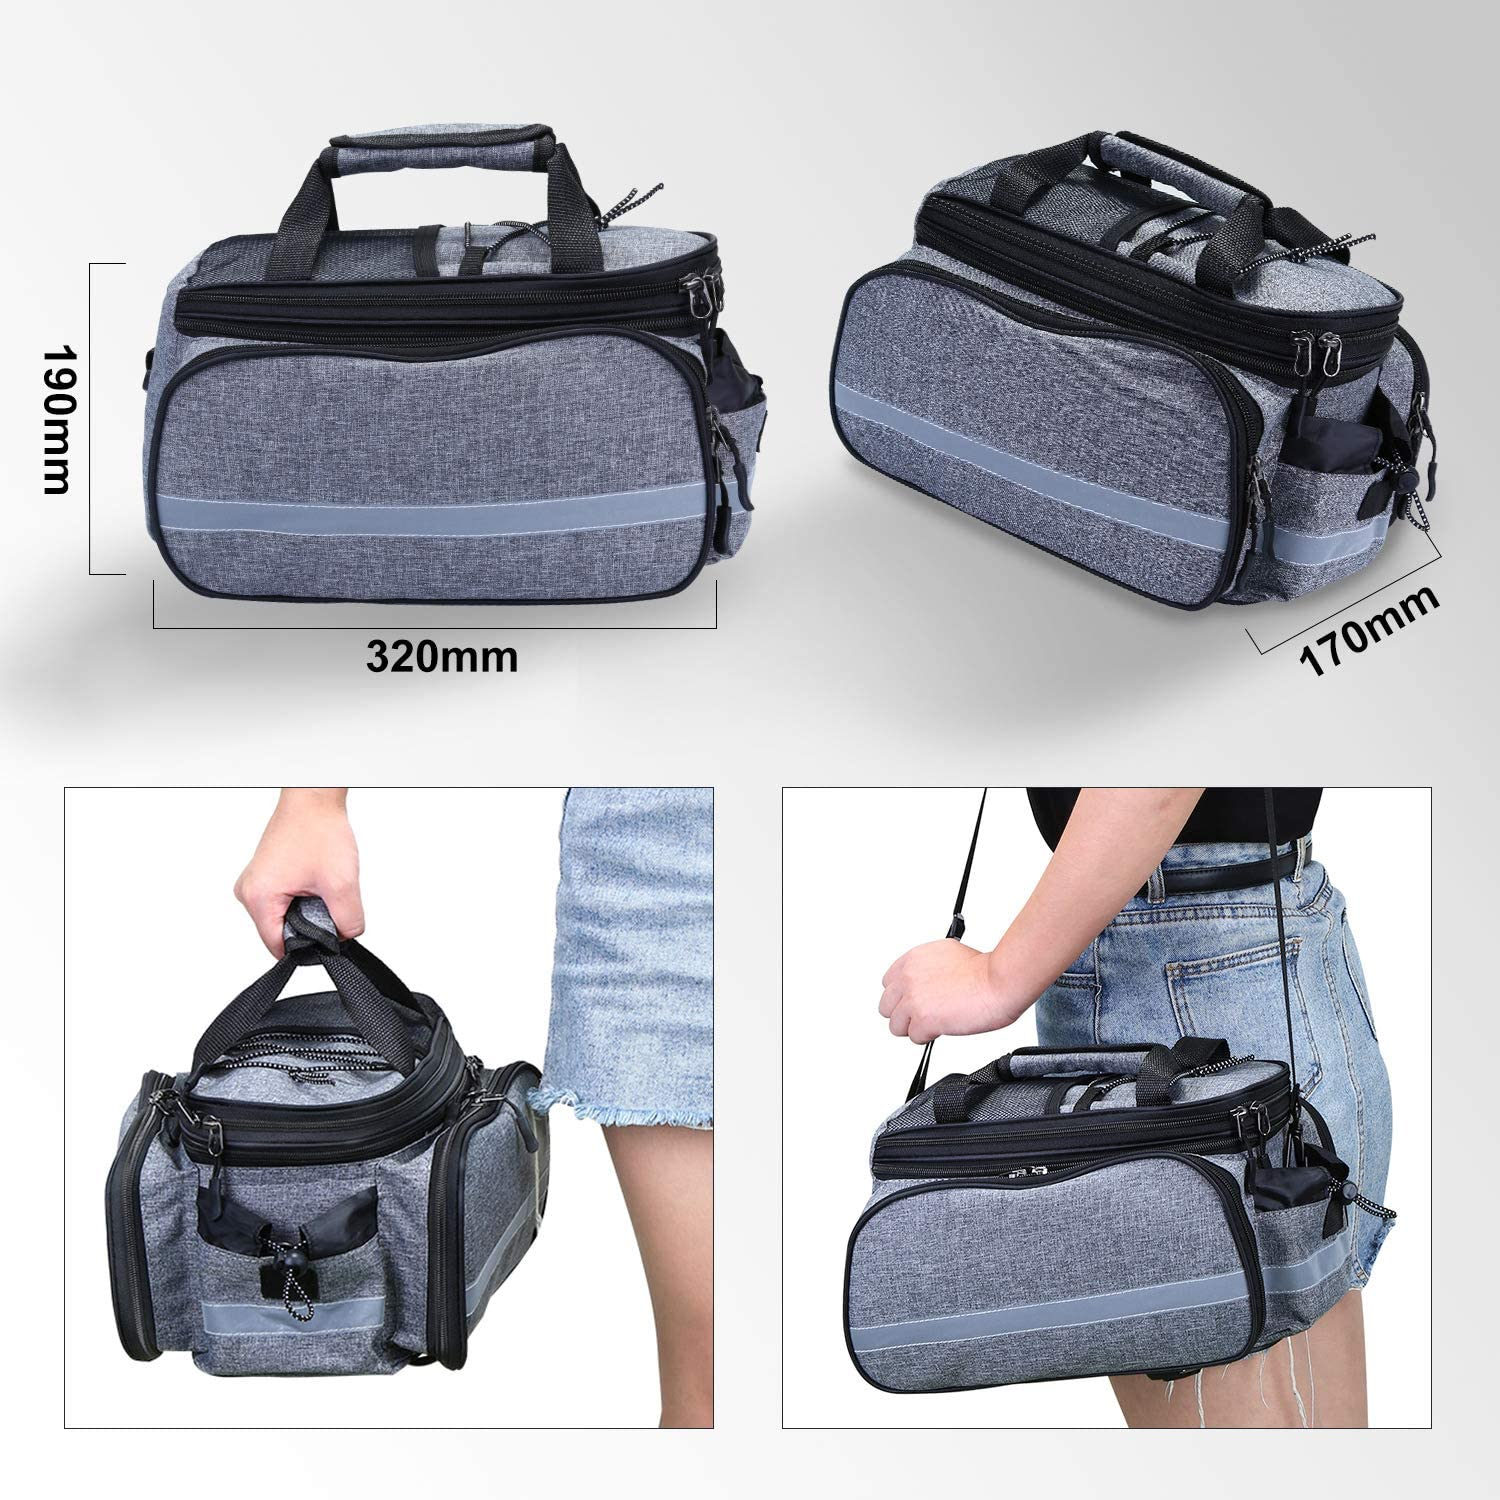 Wildken Bike Pannier Bags Outdoor Waterproof Bike Rear Seat Bag Portable Bicycle Trunk Bag with Rain Cover and Detachable Shoulder Strap